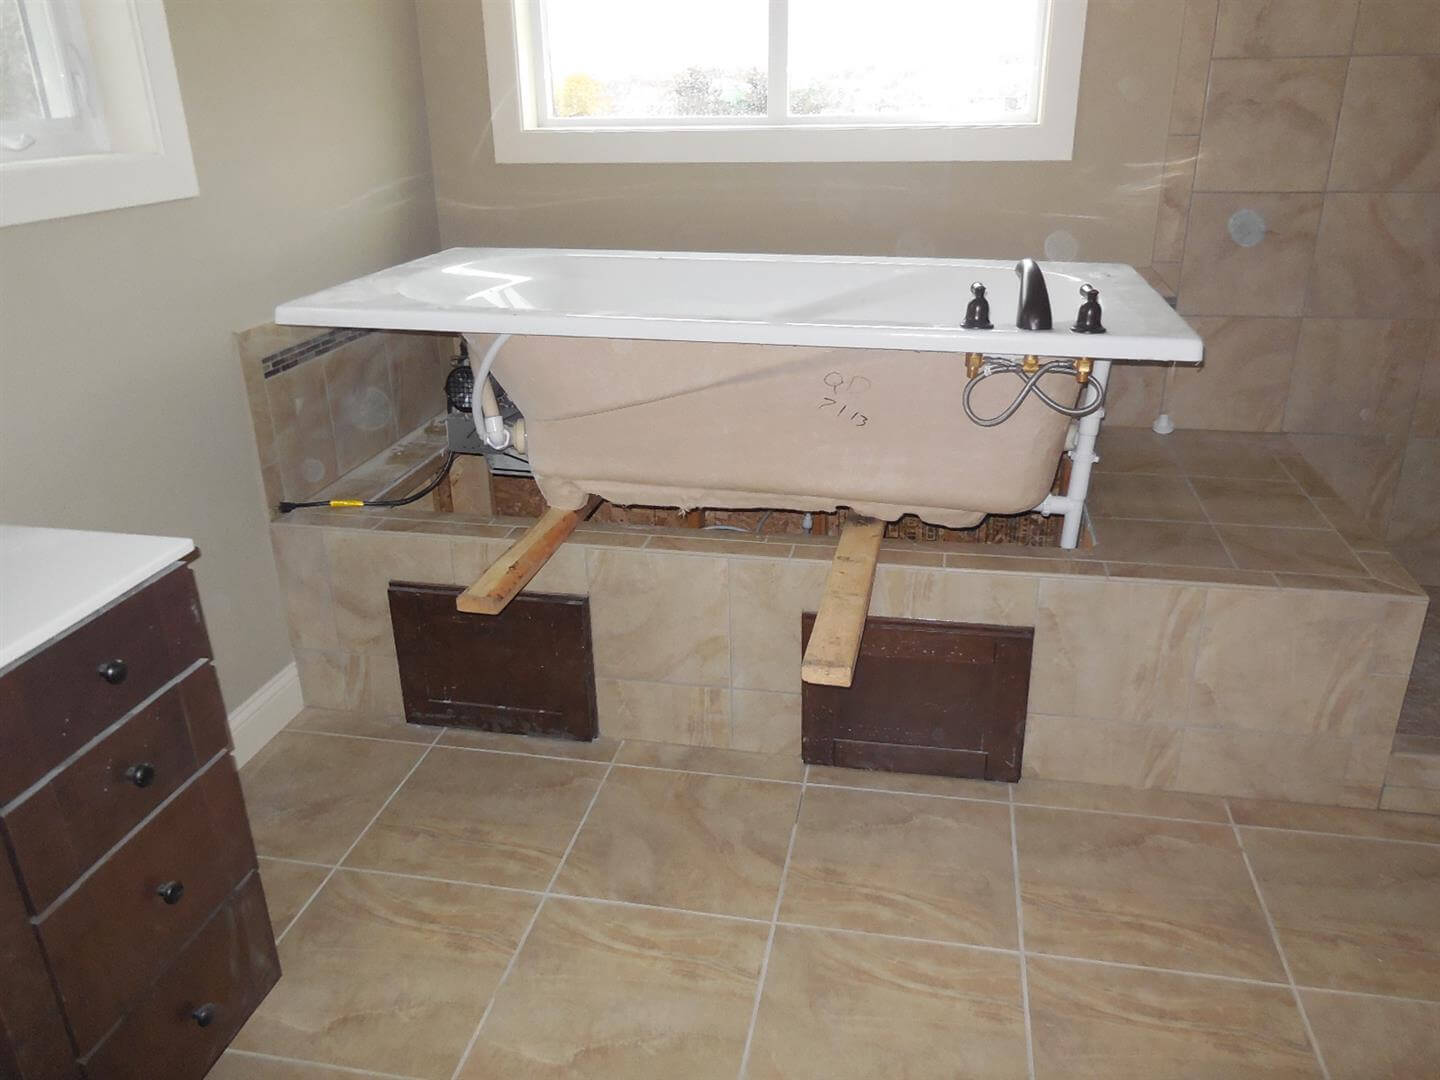 Photos From New Construction Home Inspections Part Iii Wiring A House Plumbing This Image Shows